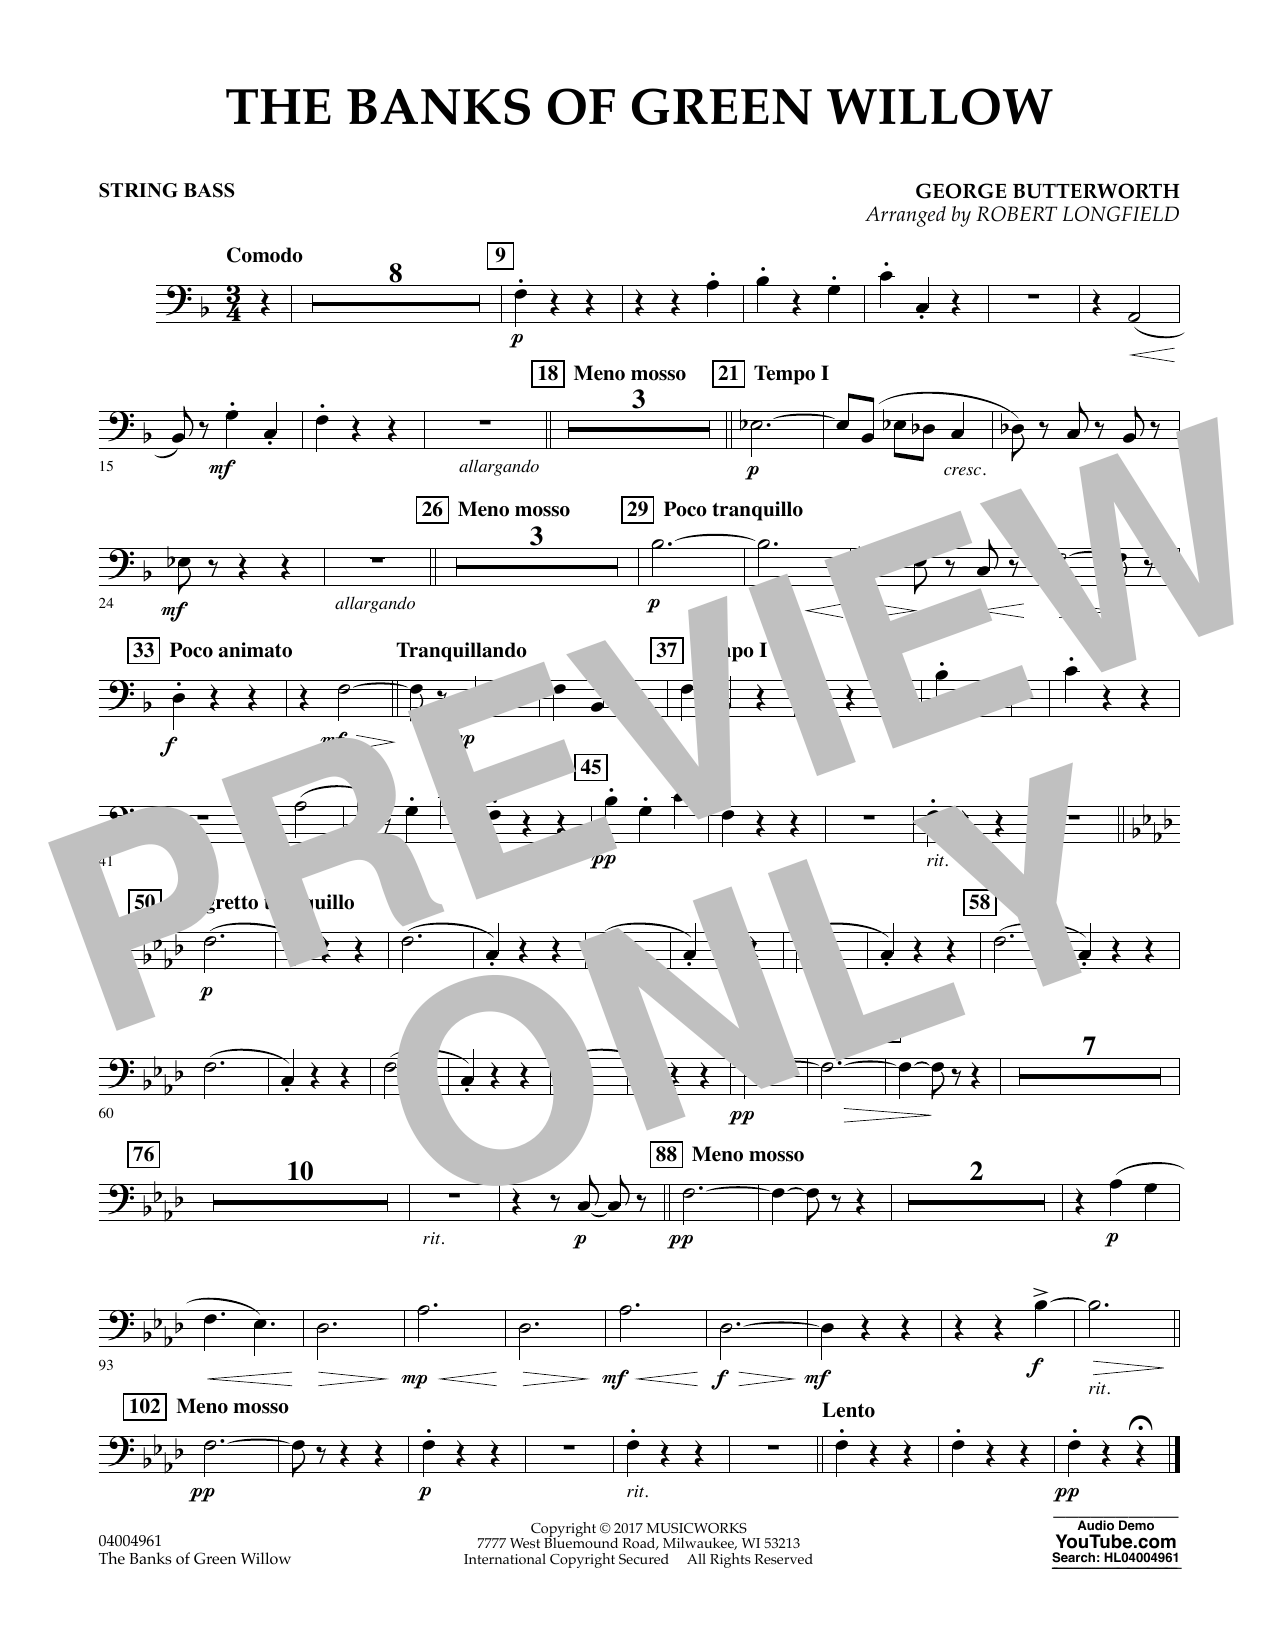 The Banks of Green Willow - String Bass Sheet Music